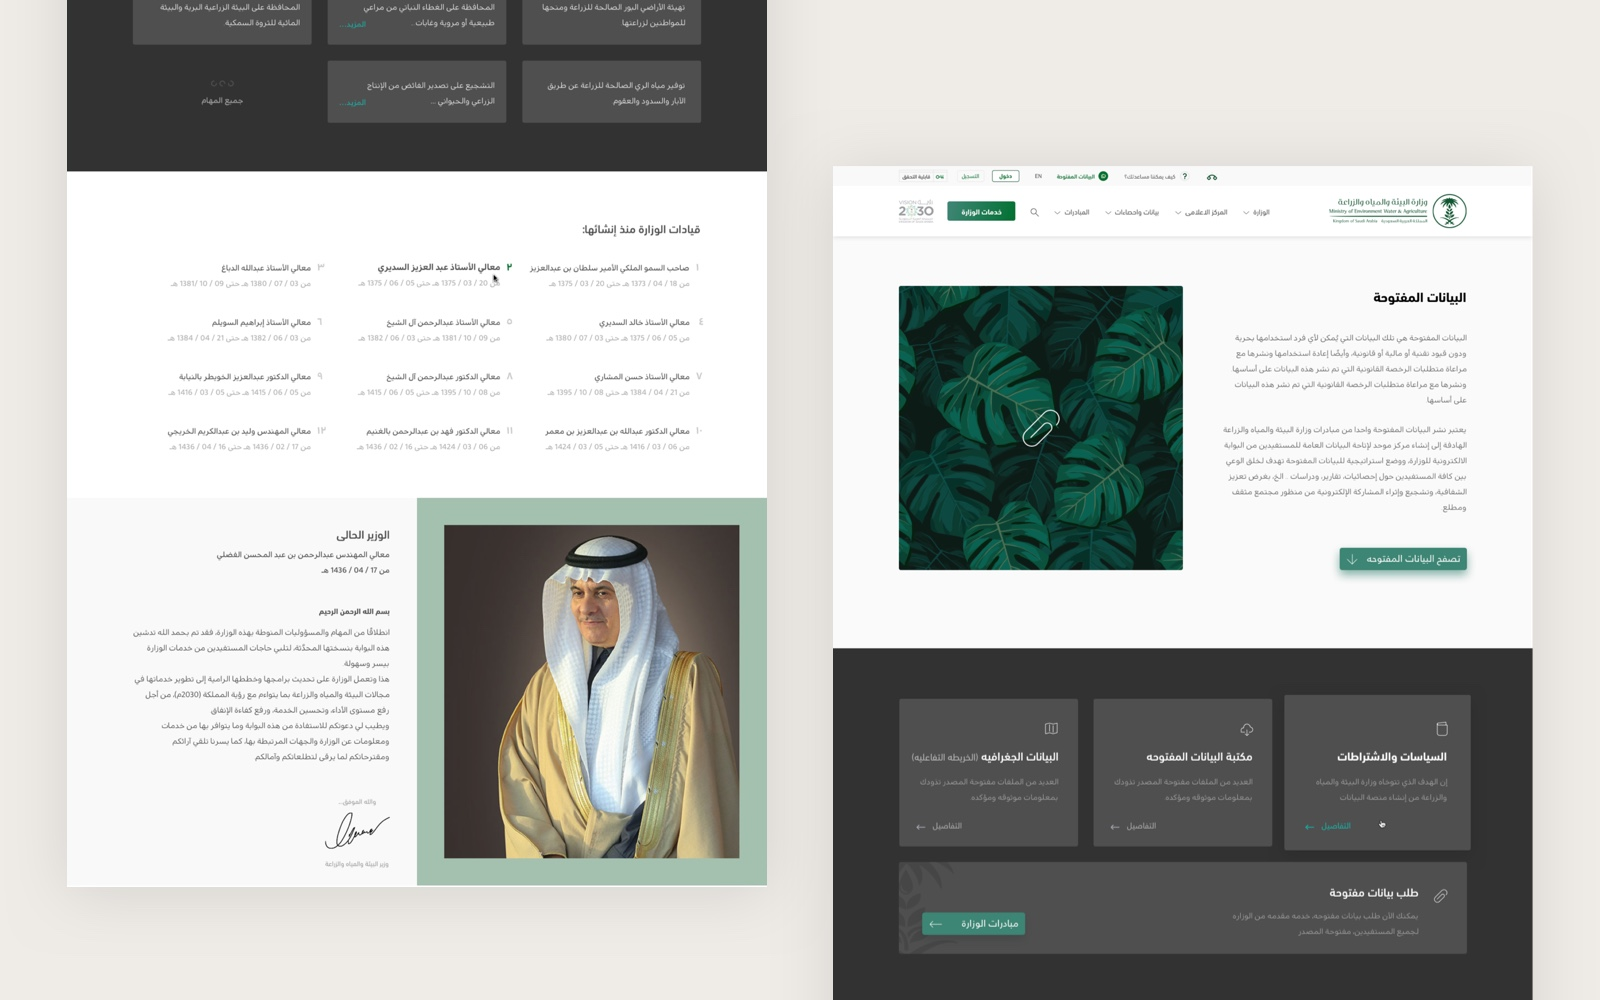 KSA-Ministry-of-Agriculture-5